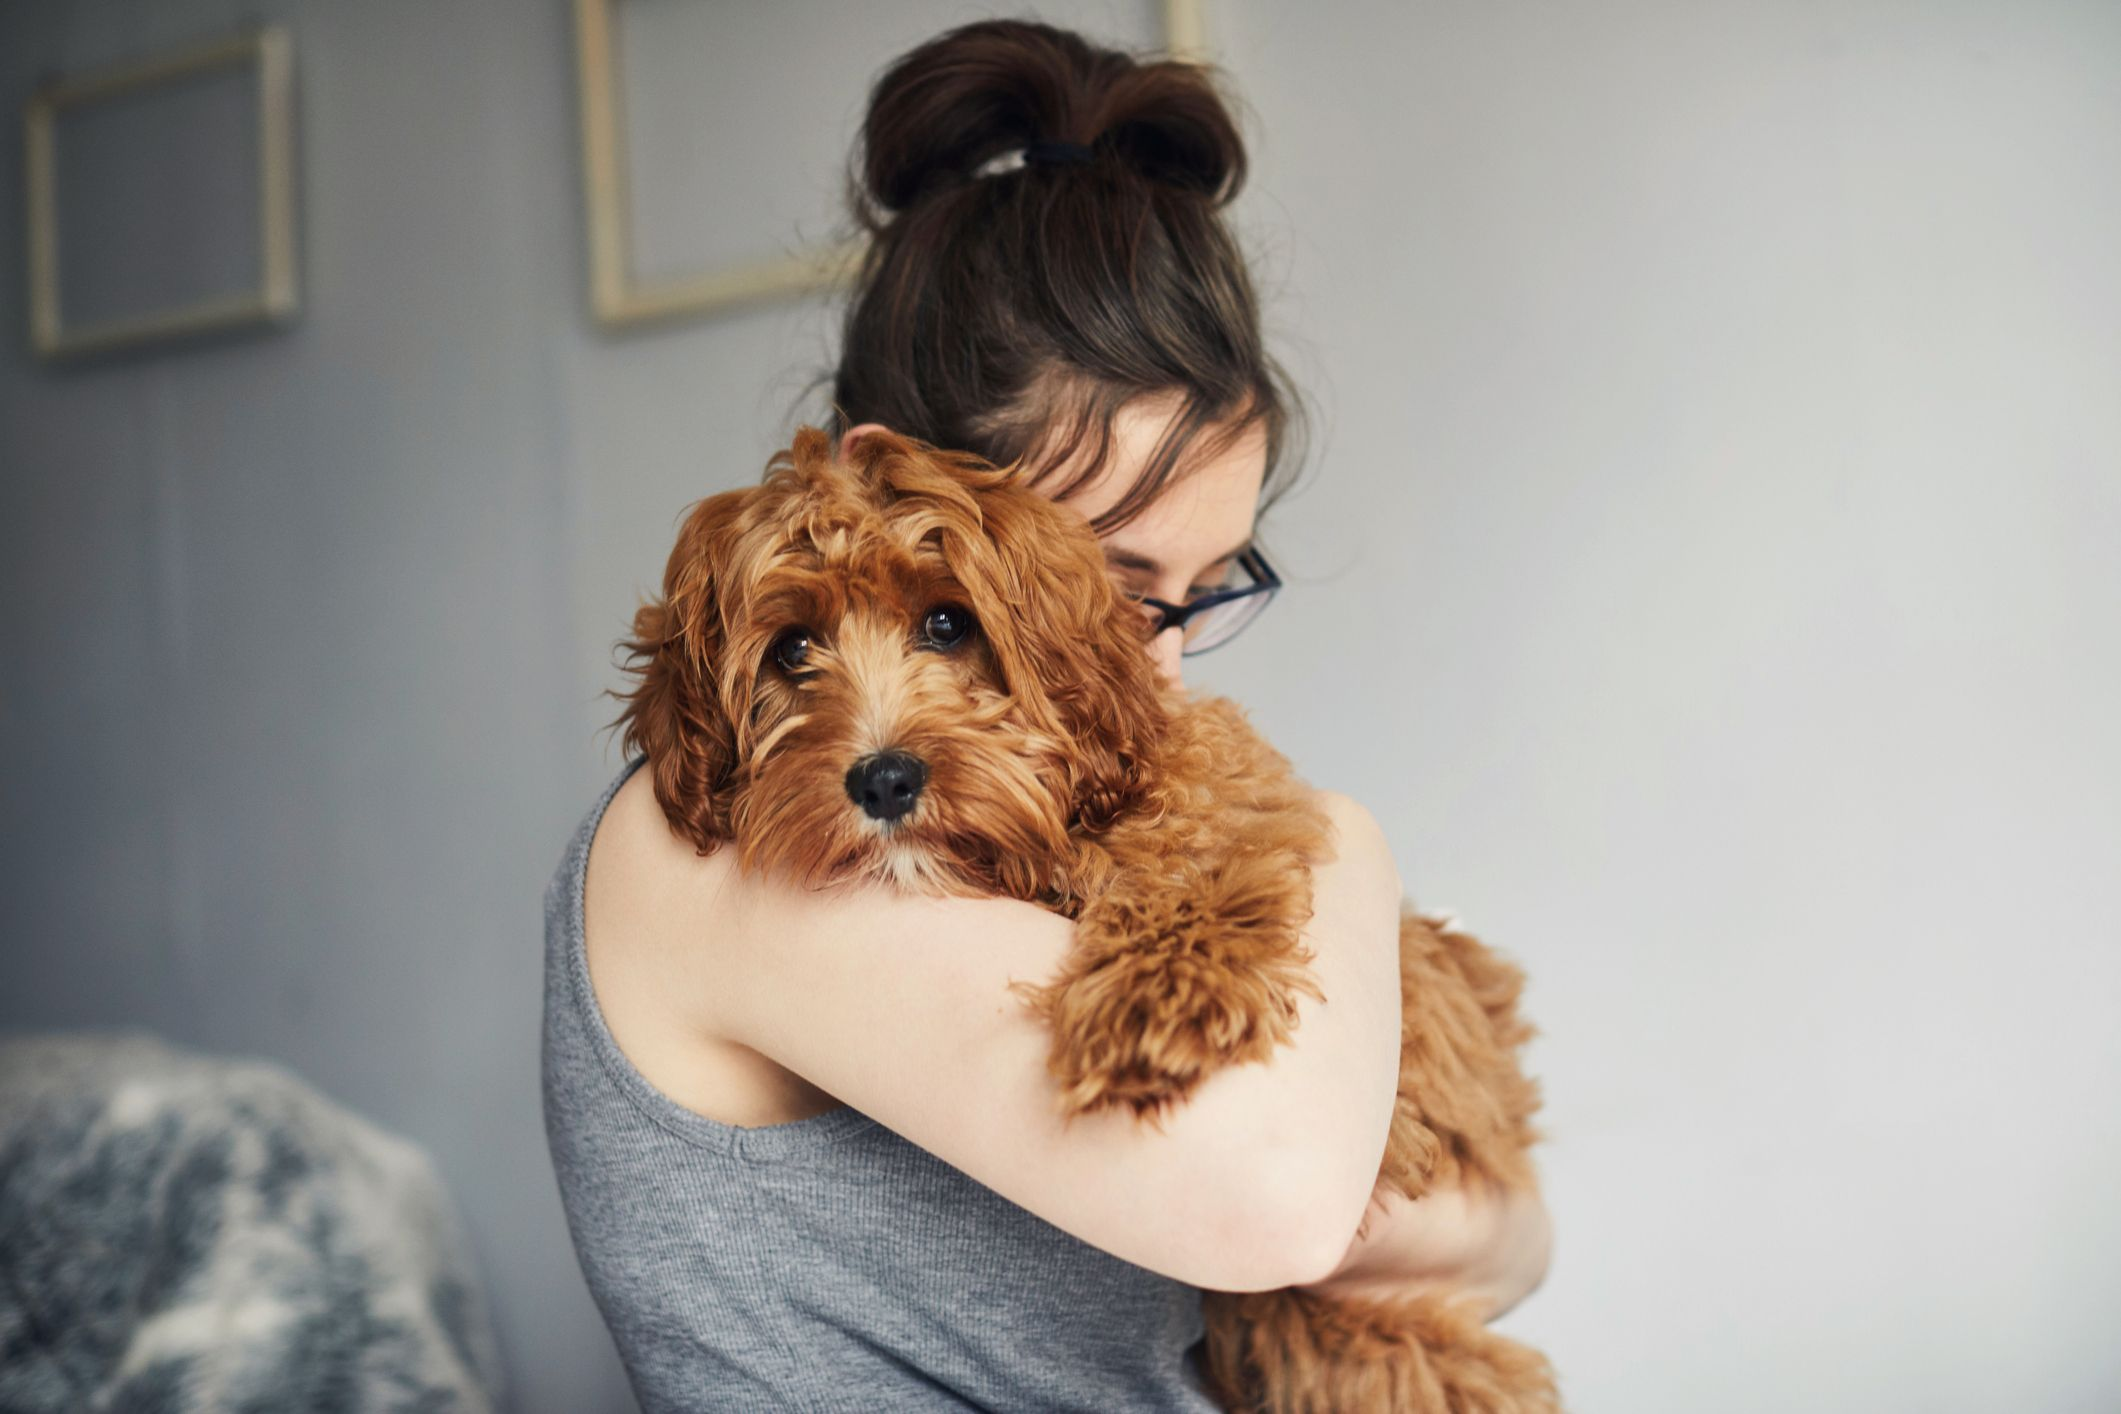 20 Dog Instagram Captions Captions For All Your Puppy Pics